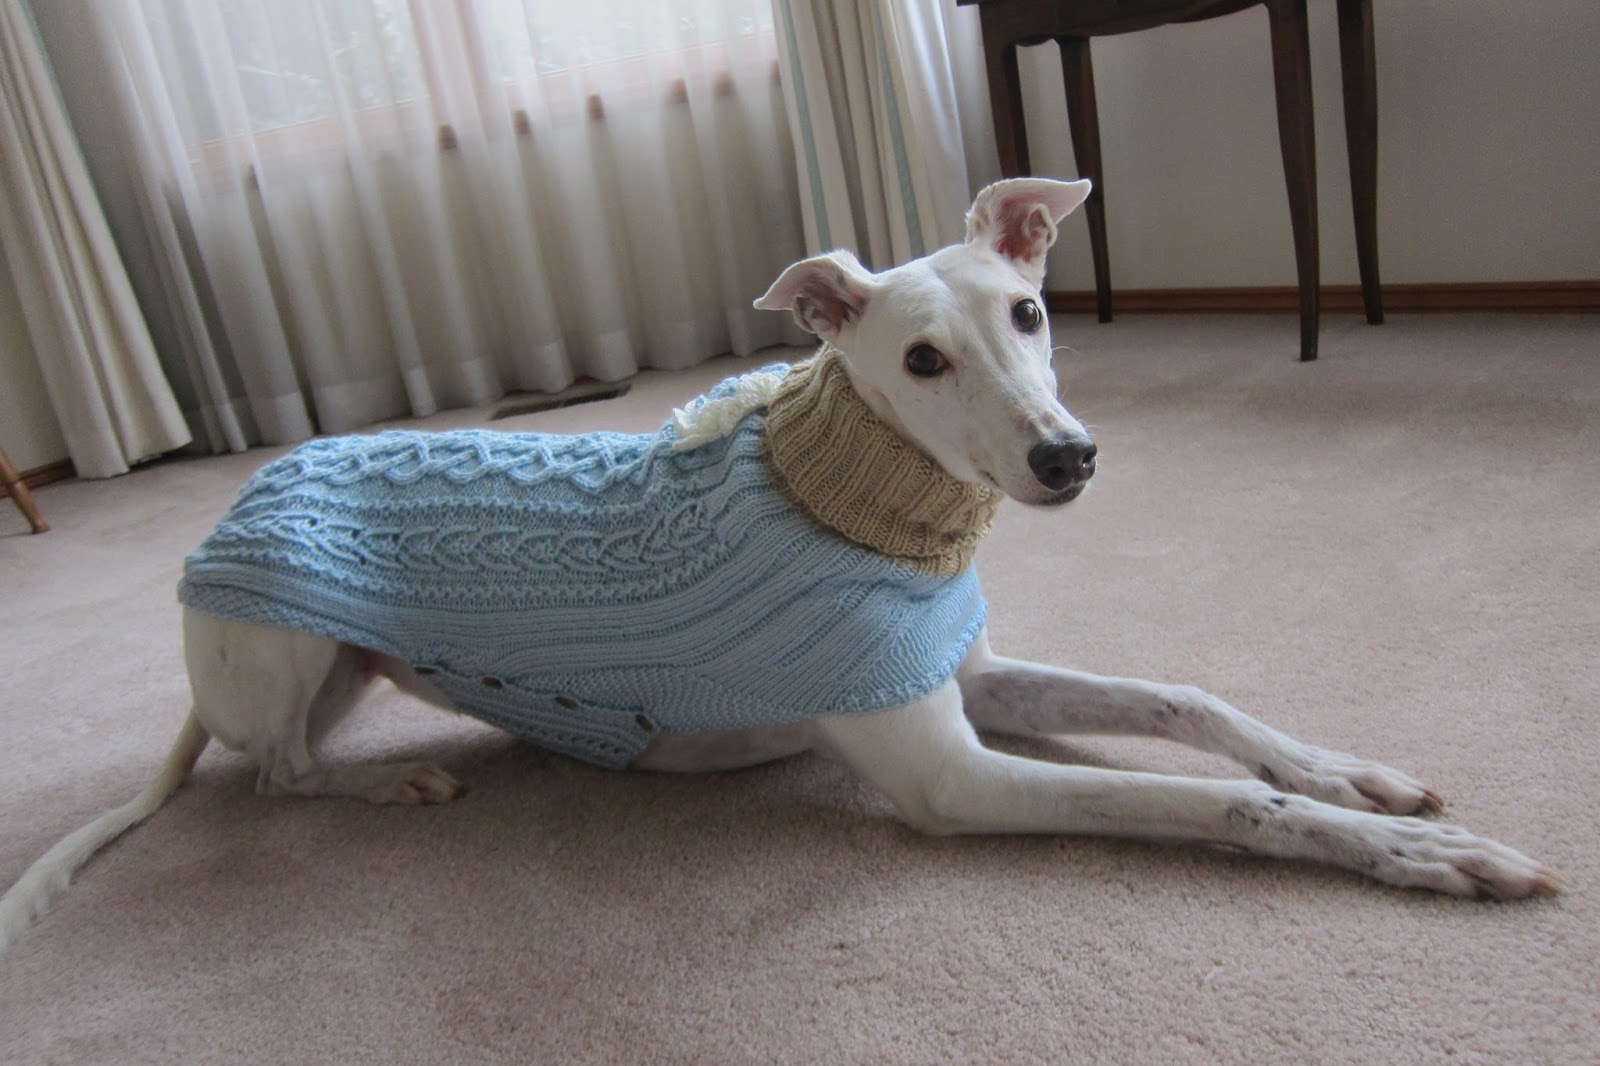 Knitting Patterns For Greyhound Dogs : Greyhound Knit Sweaters: Baby blue sweater for a girl dog